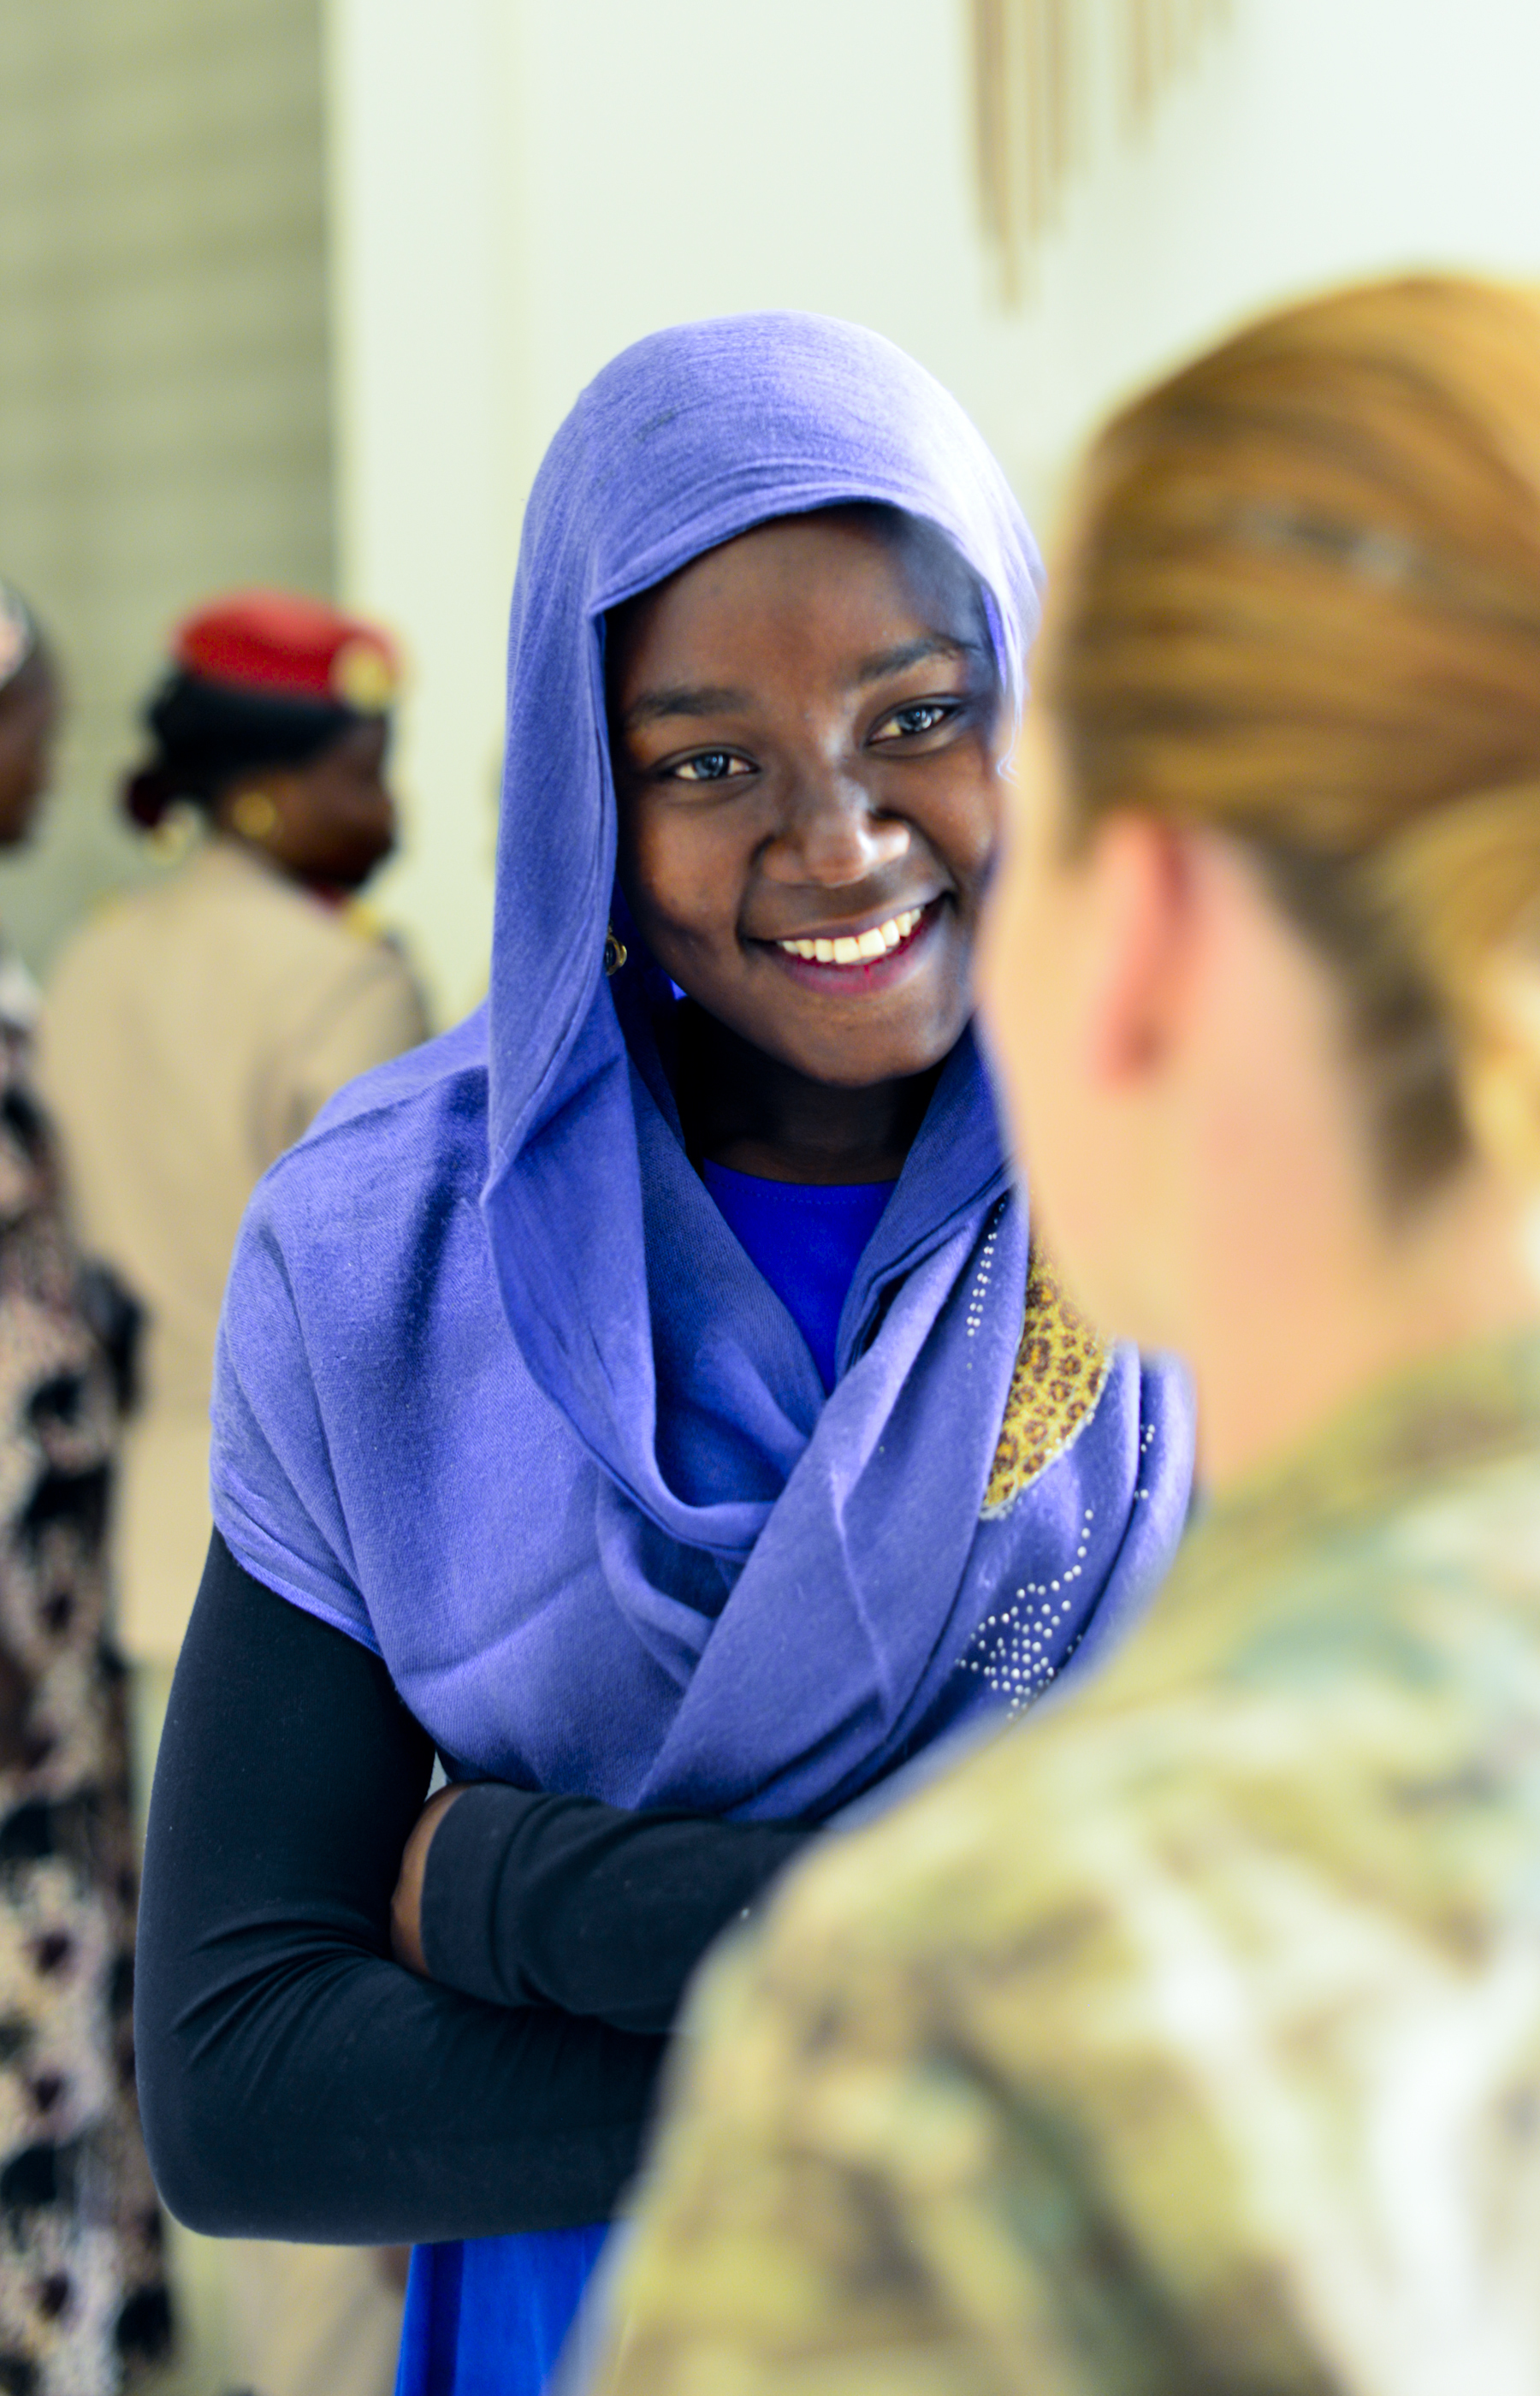 Special Operations Command Africa hosted its first Women's Leadership Forum during International Women's Day in N'Djamena, Chad, Mar. 7, 2017, as a part of Exercise Flintlock.  This leadership discussion forum was led by Chadian women from across the spectrum of employment to address Chadian challenges and opportunities, and was facilitated by the U.S. Embassy and Spirit of America. Flintlock is an annual special operations exercise involving more than 20 nation forces that strengthens security institutions, promotes multinational sharing of information, and develops interoperability among partner nation in North and West Africa. (Photo by Richard Bumgardner/Released)